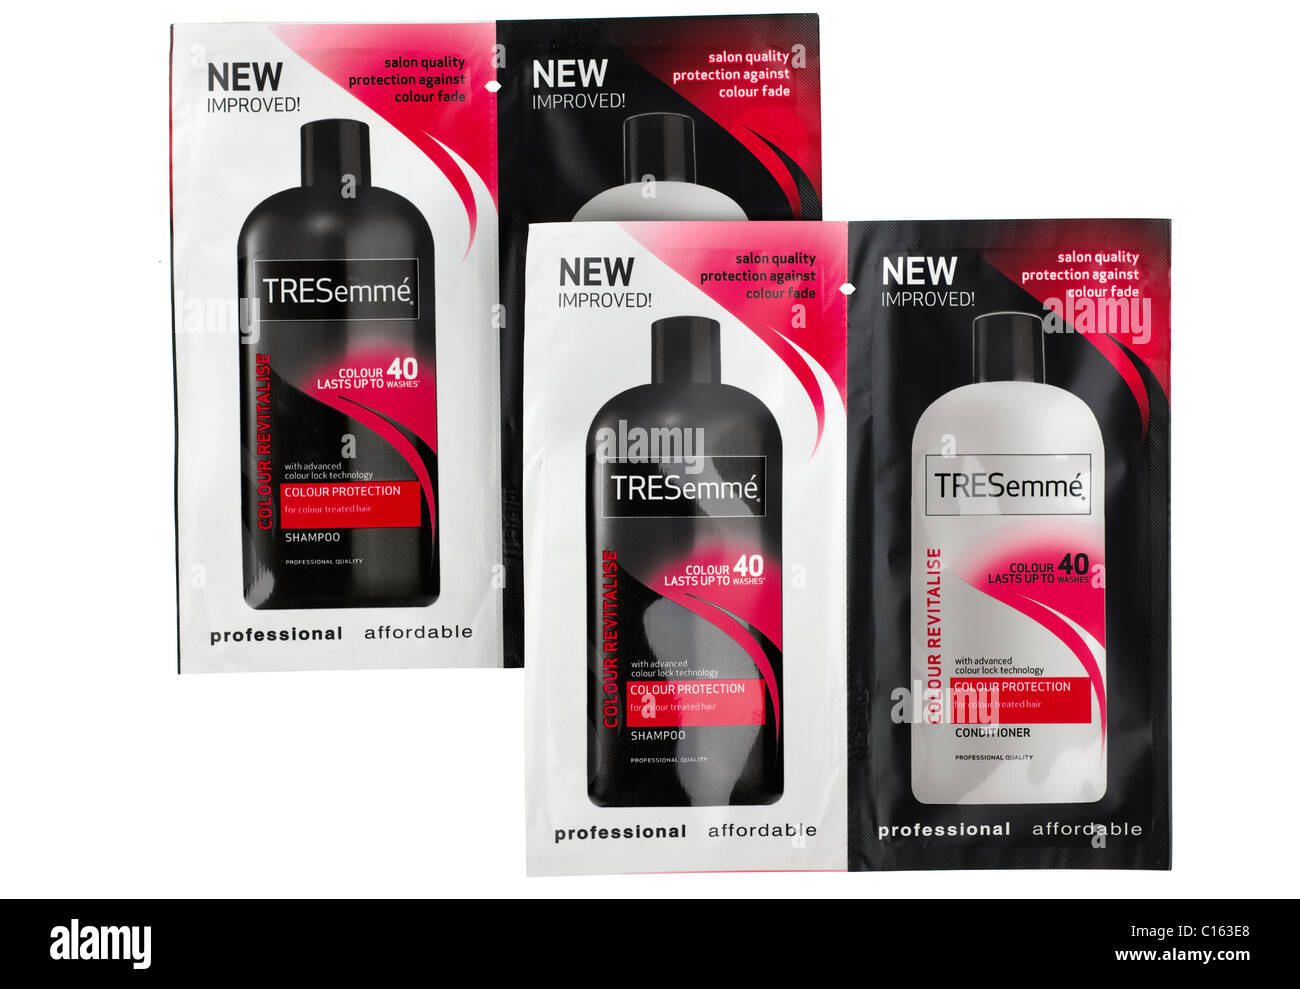 Four sample sachets of New Improved Tresemme conditioner and shampoo - Stock Image